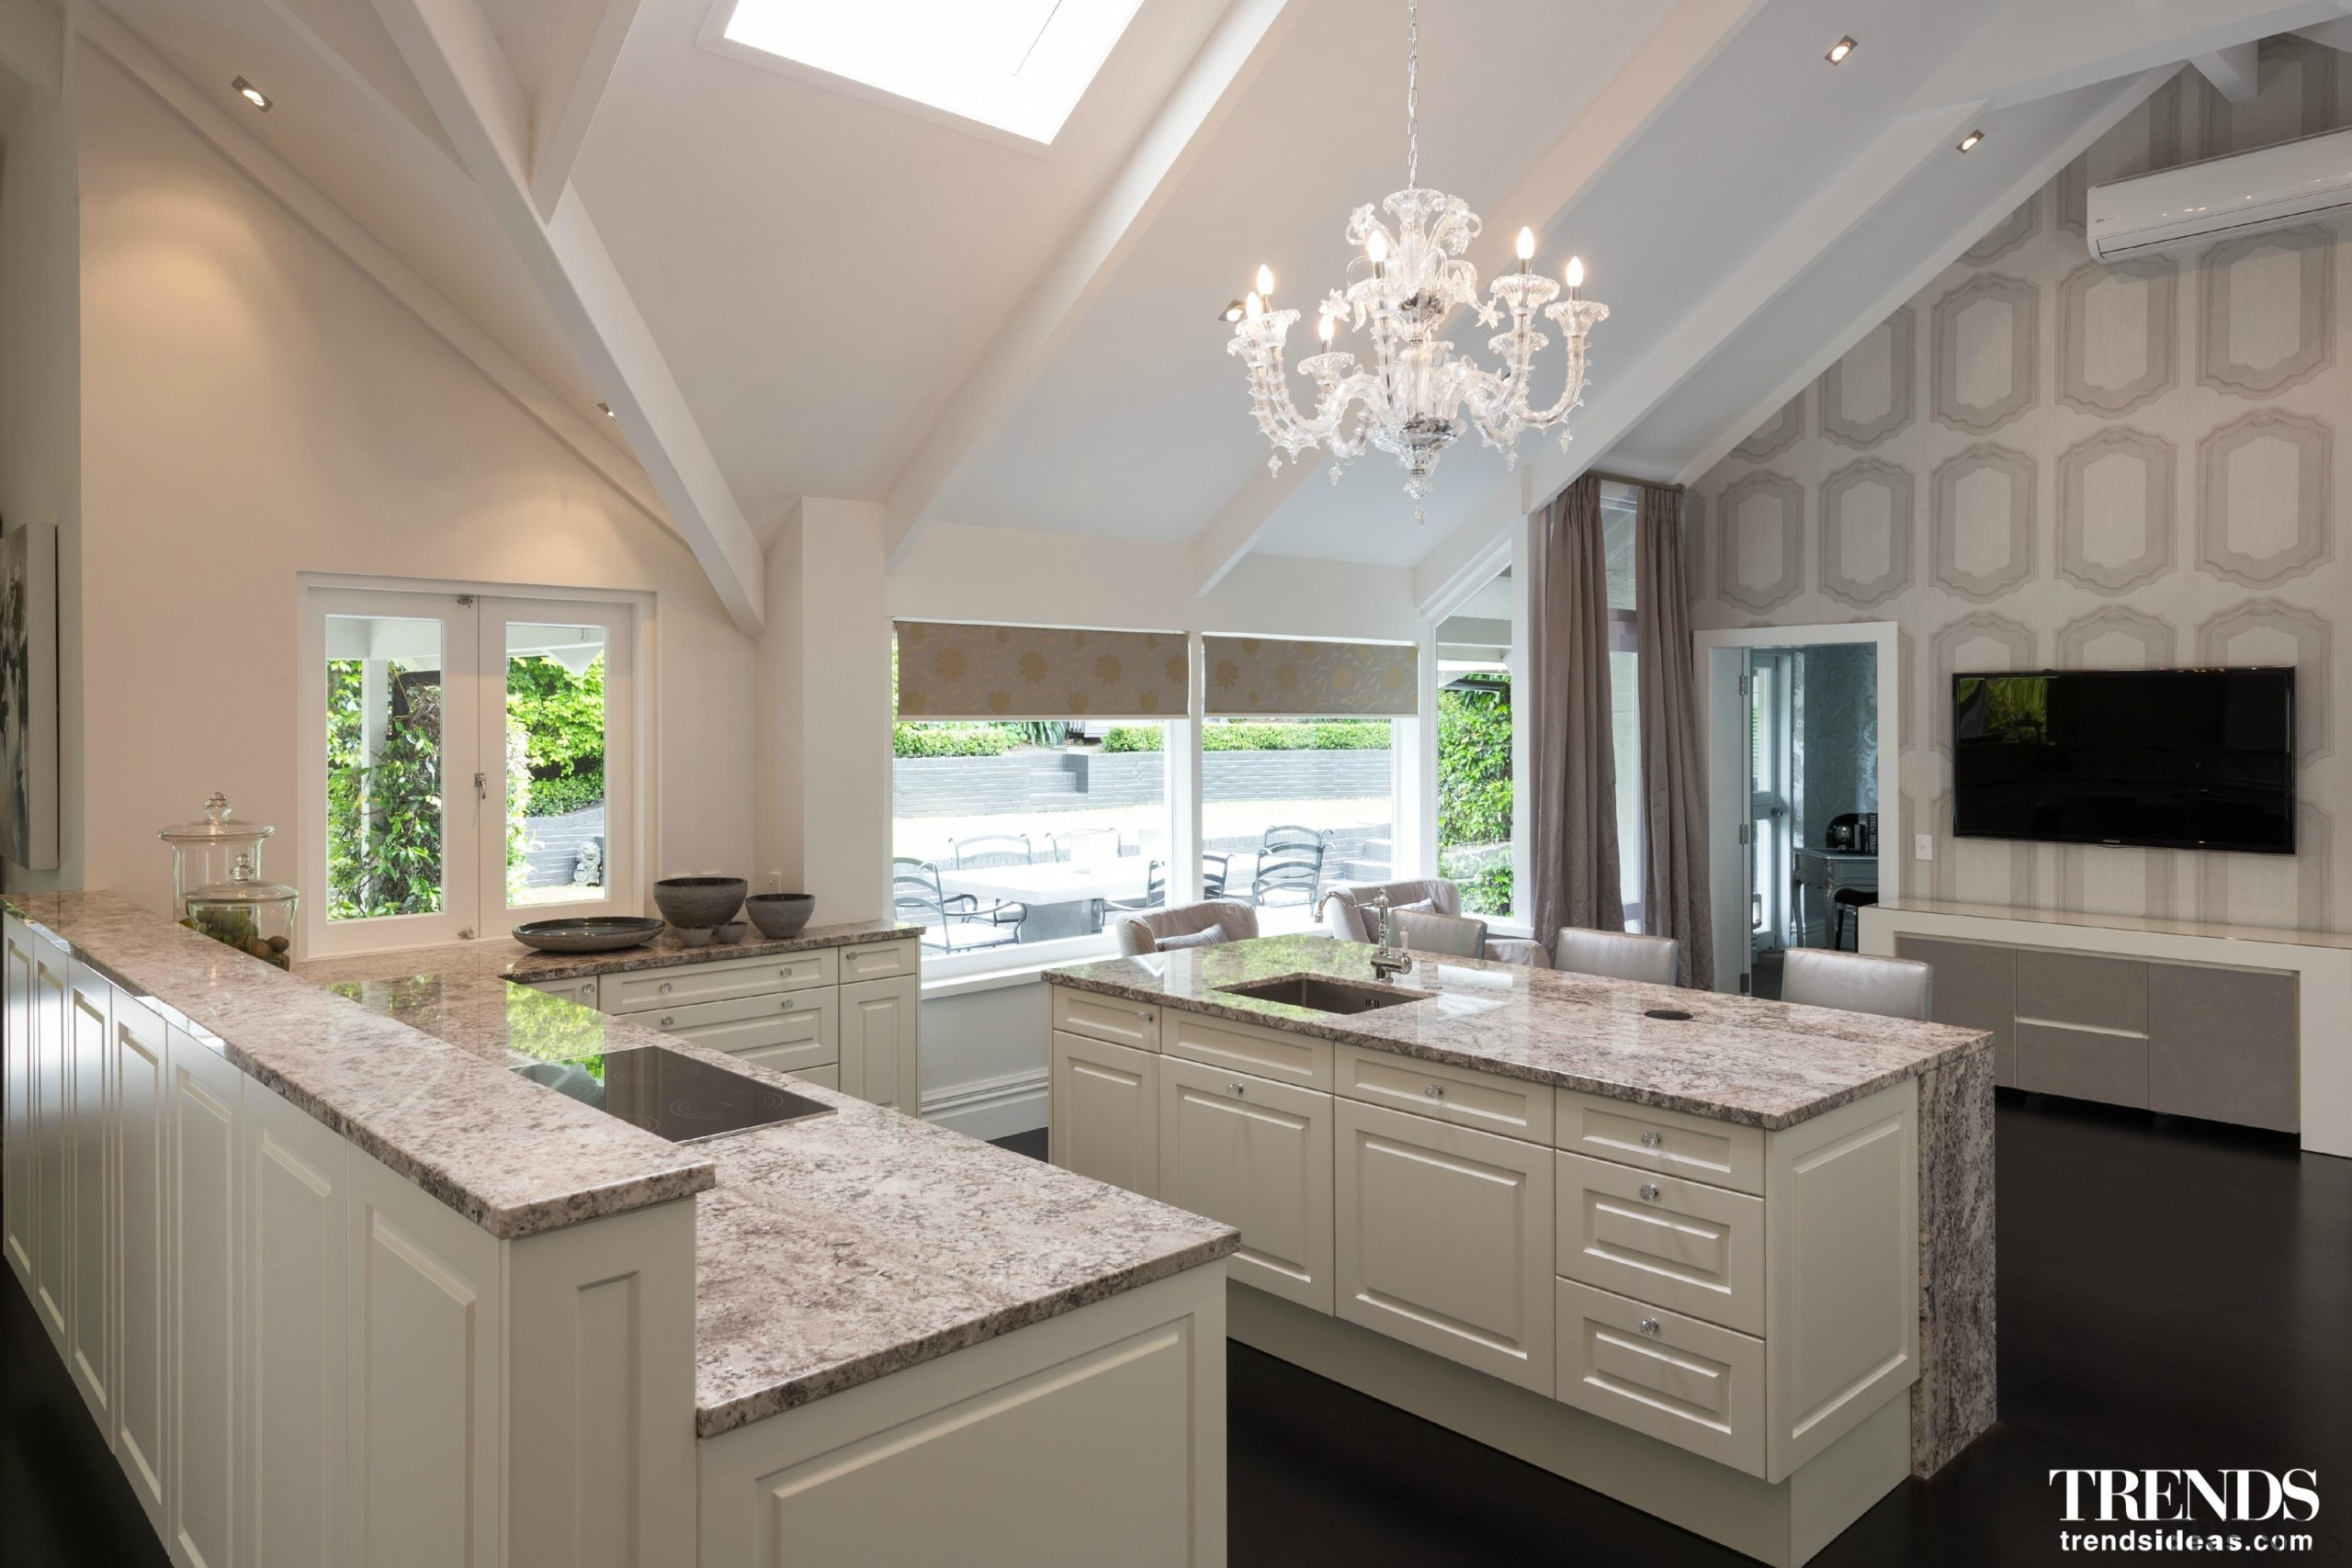 Shortlisted Entry Poggenpohl Akzente Limited2 - ceiling | ceiling, countertop, cuisine classique, daylighting, estate, home, interior design, kitchen, real estate, window, gray